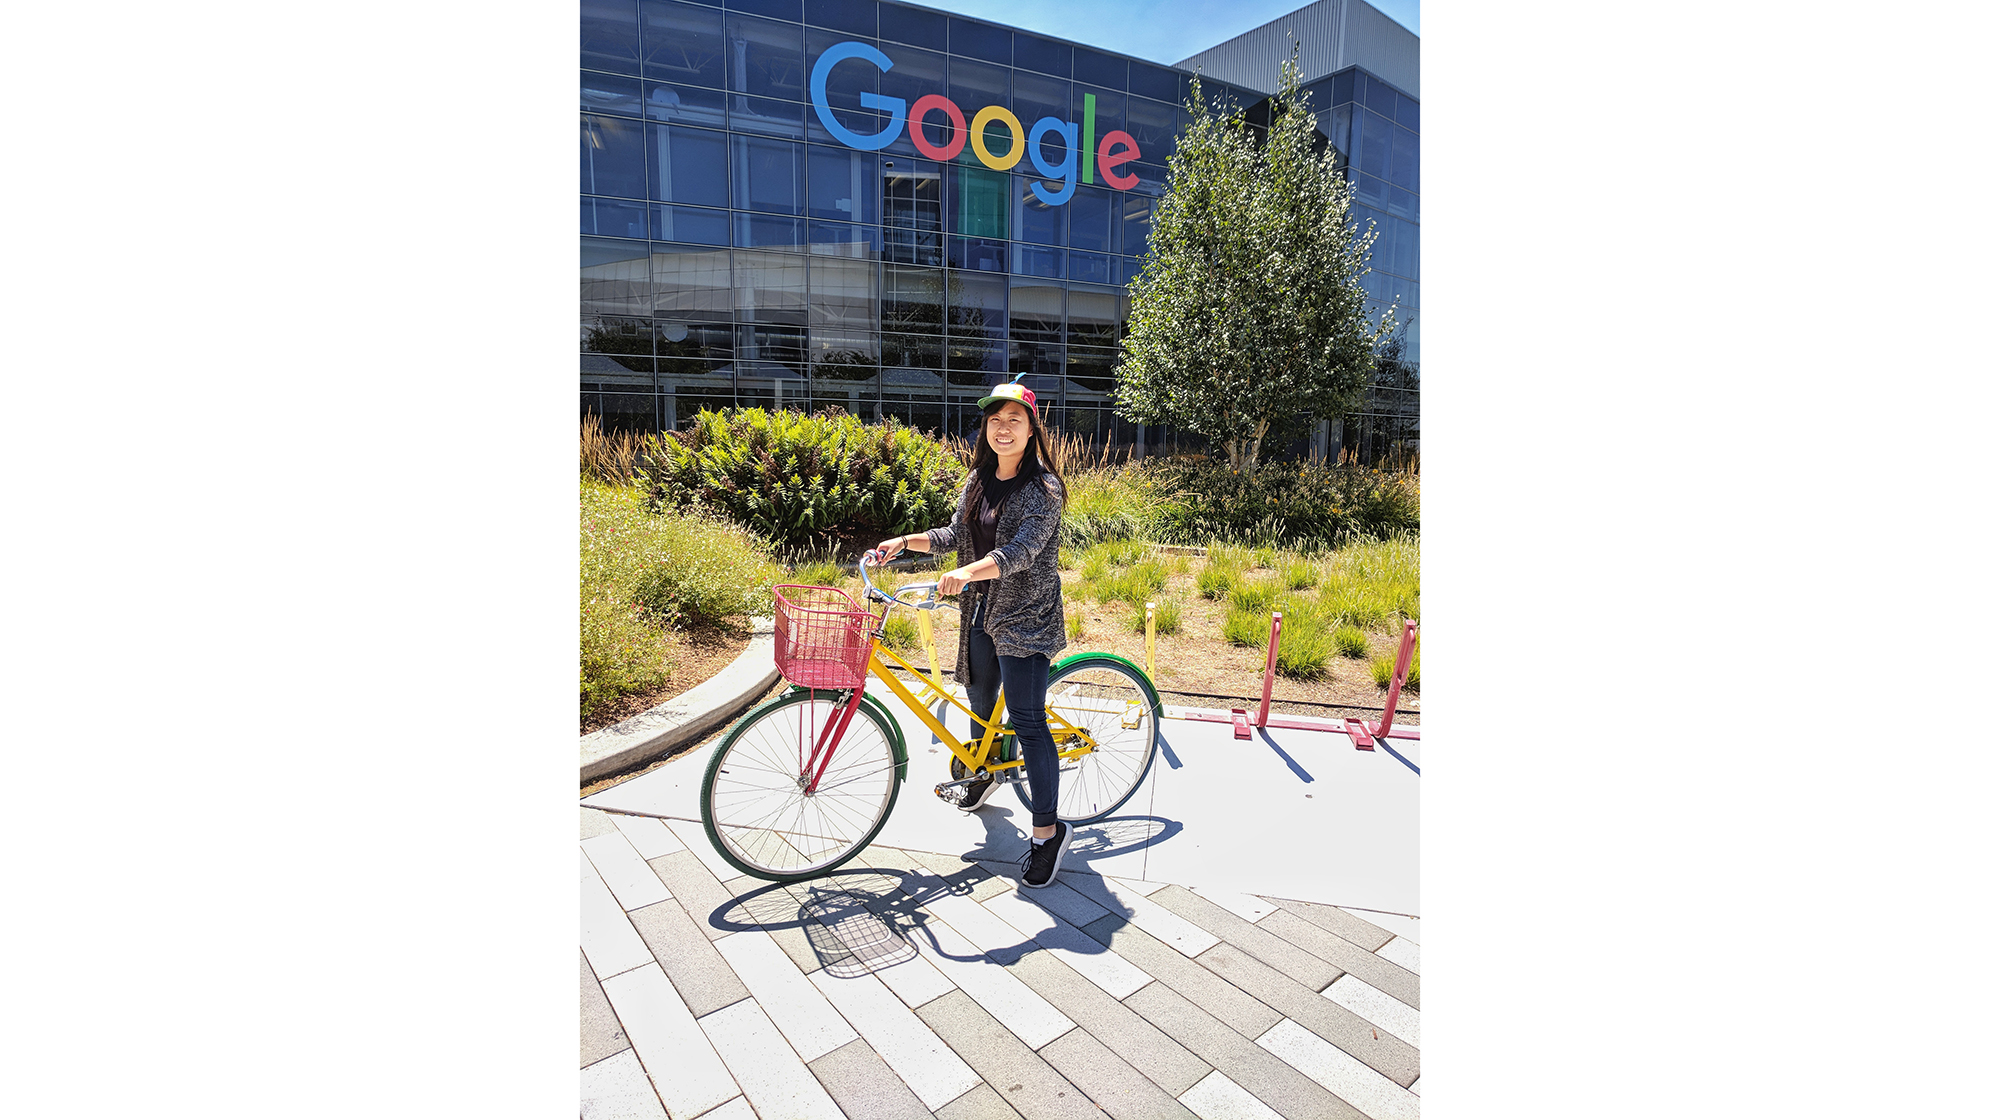 Ethelia Lung on a bike in front of Google